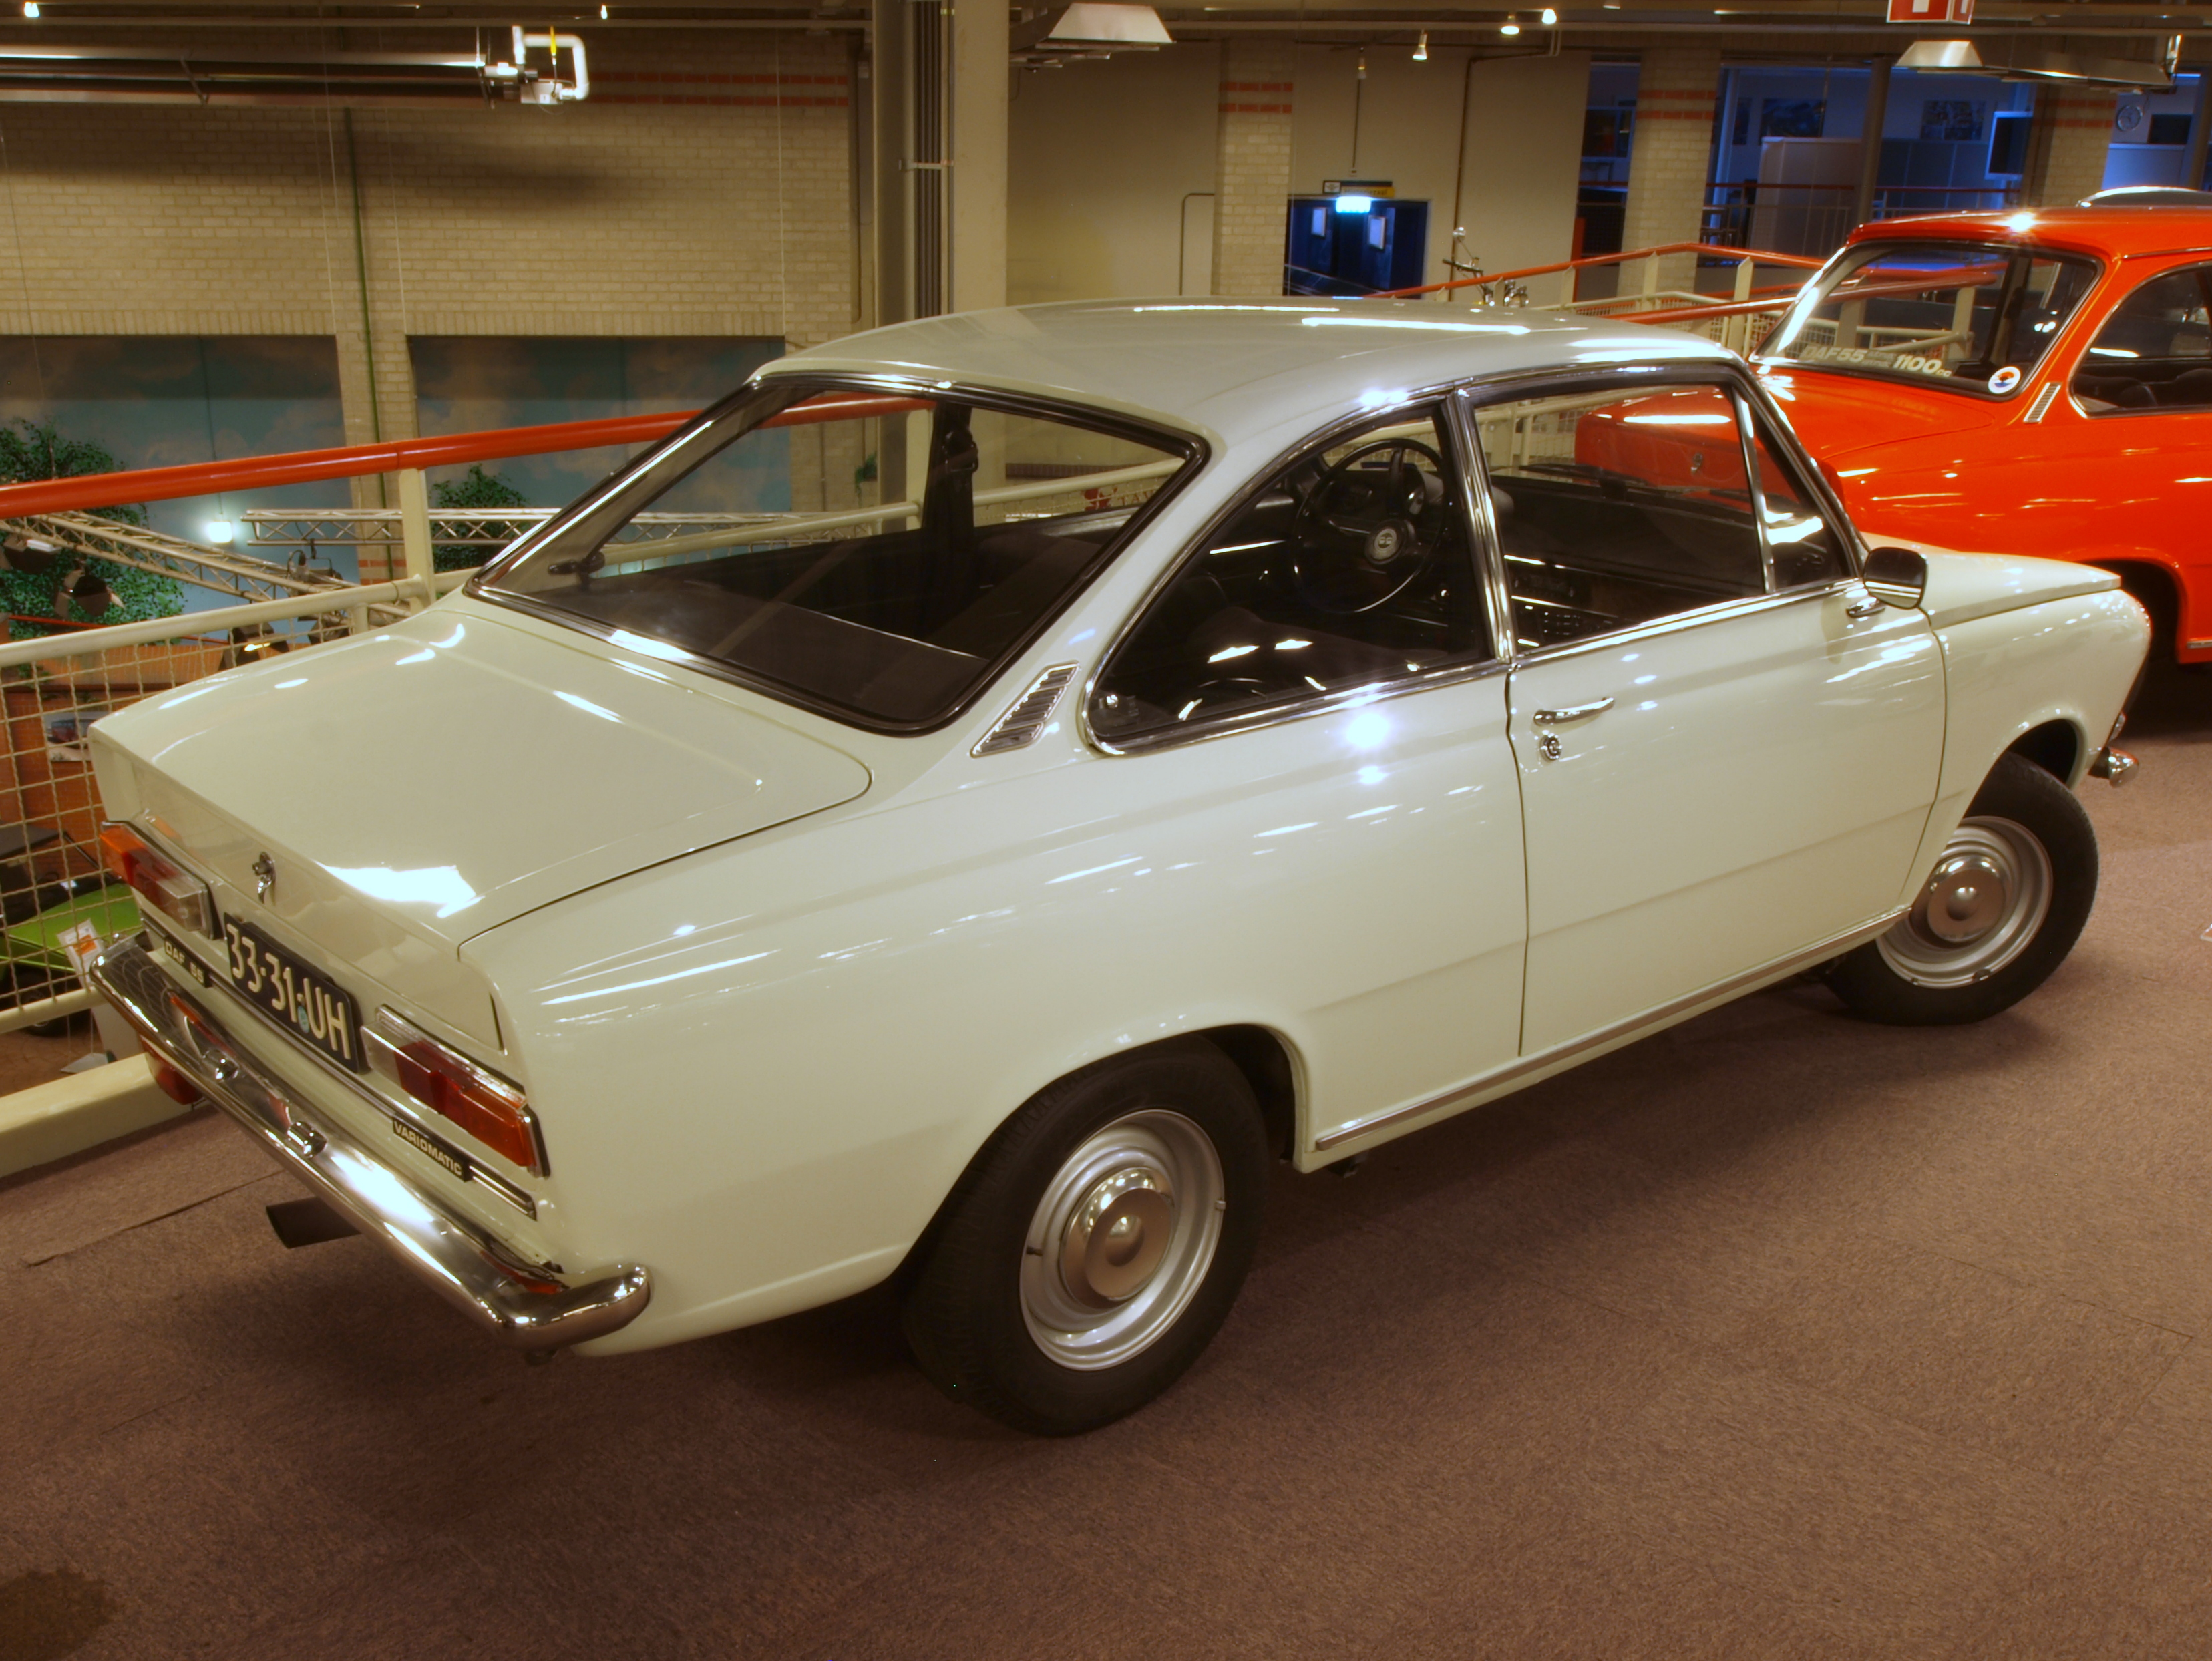 File:DAF 55 coupe (2nd type) type 5504 pic1.JPG